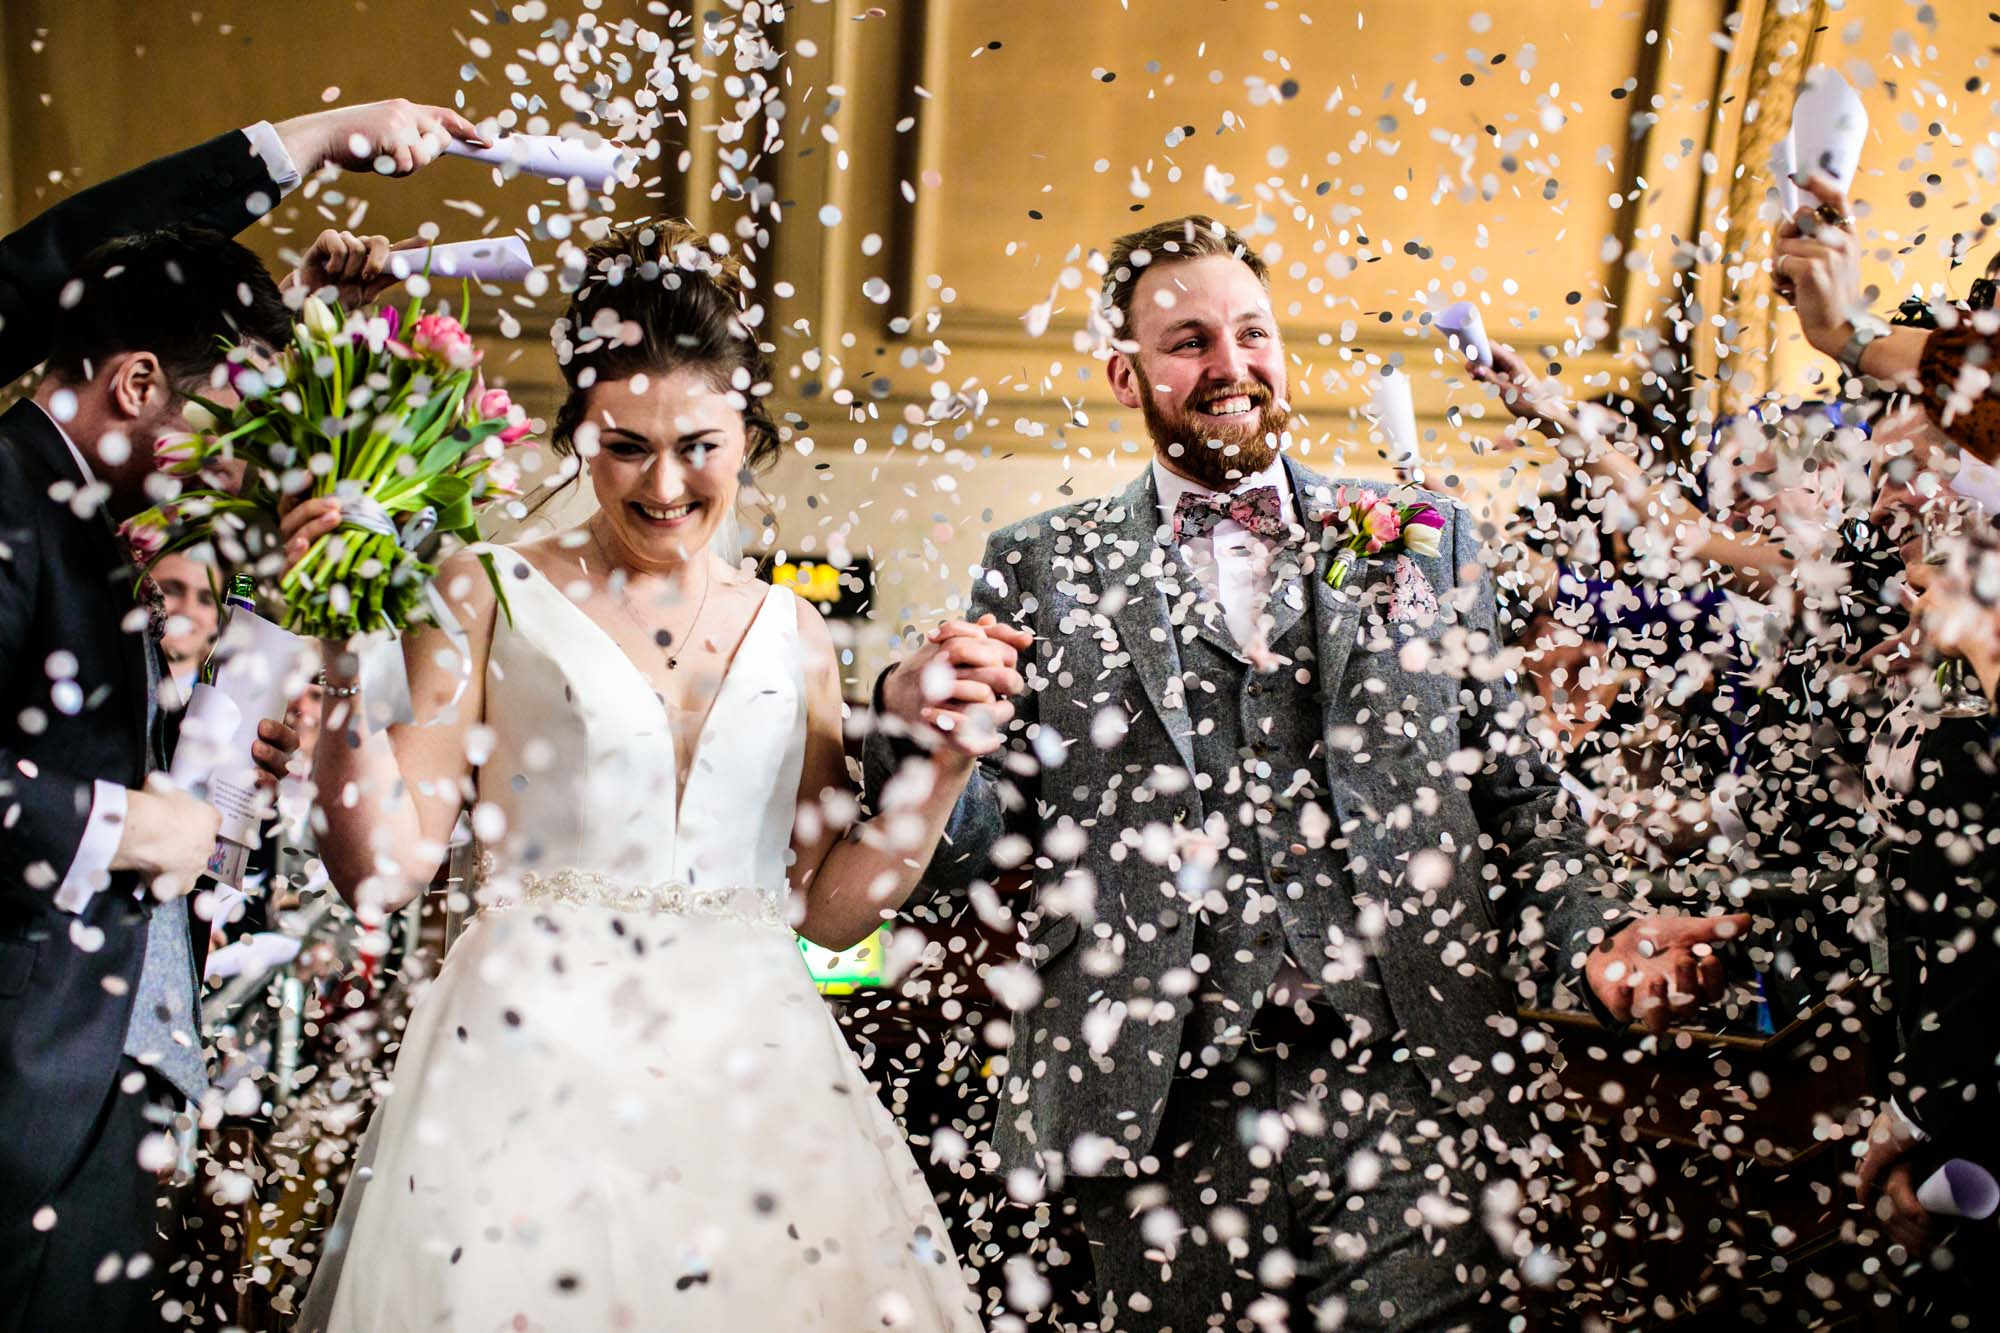 Colourful Wedding Photography Albert Hall Manchester